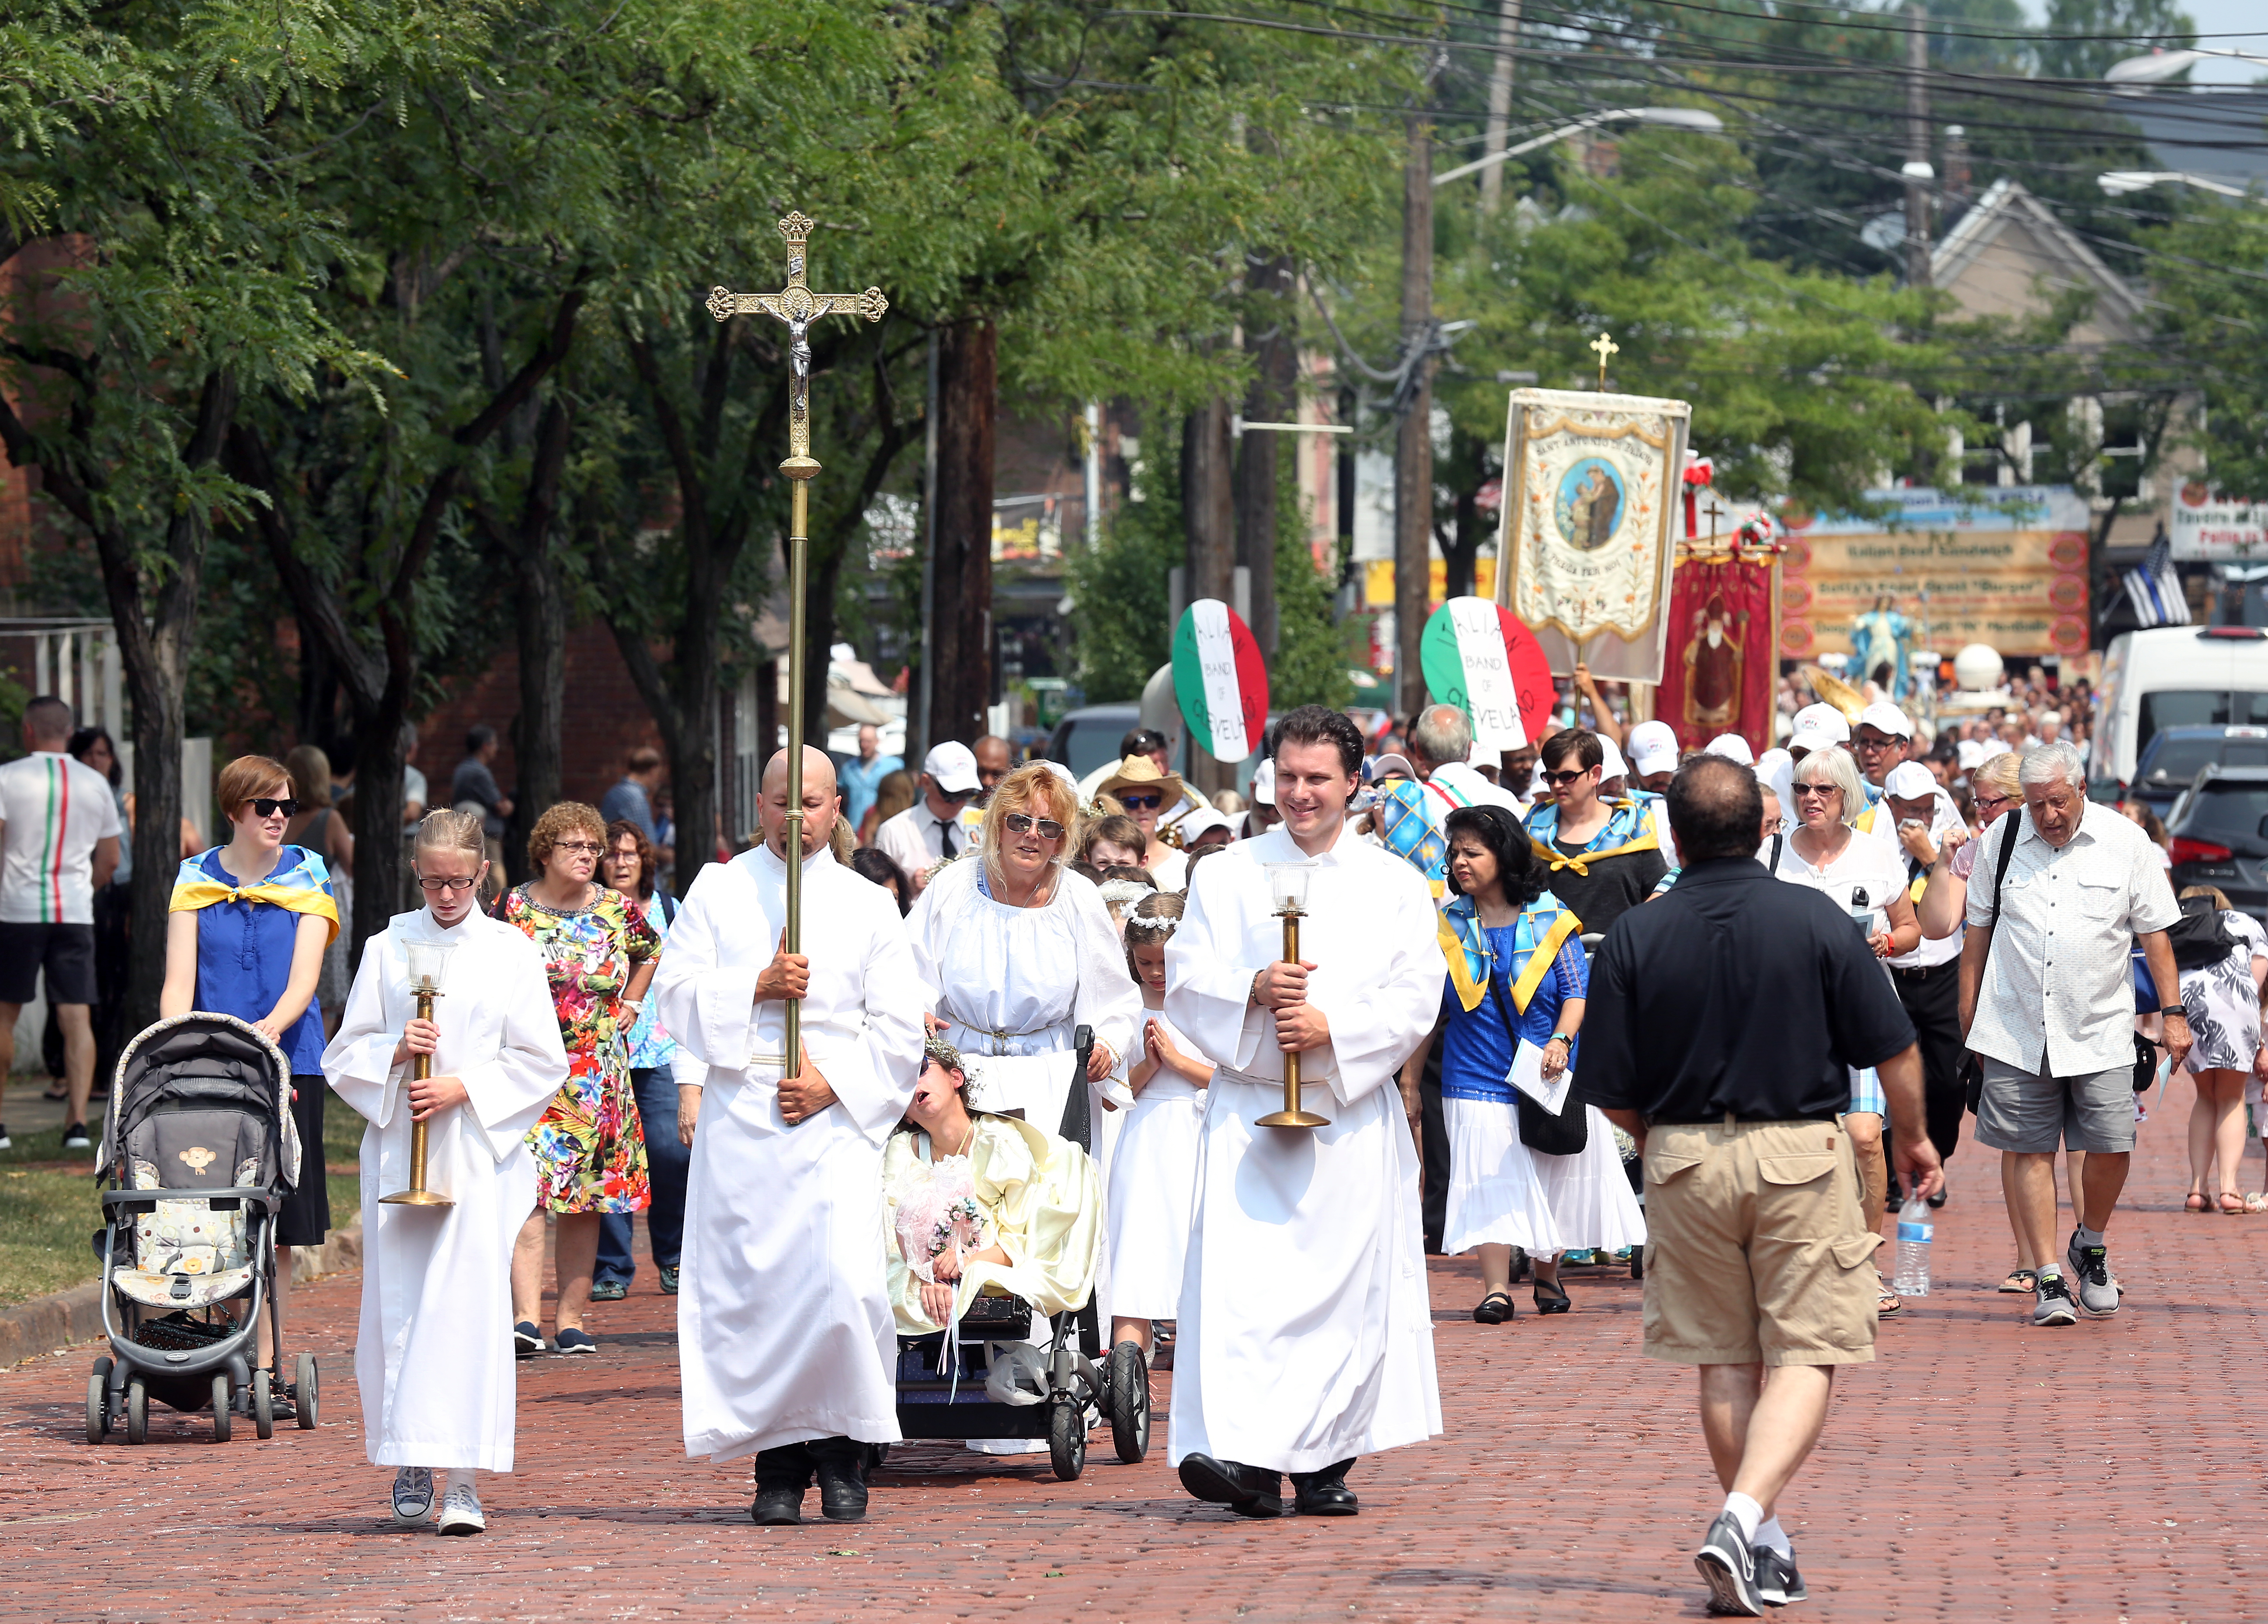 Feast of the Assumption Parade 2018